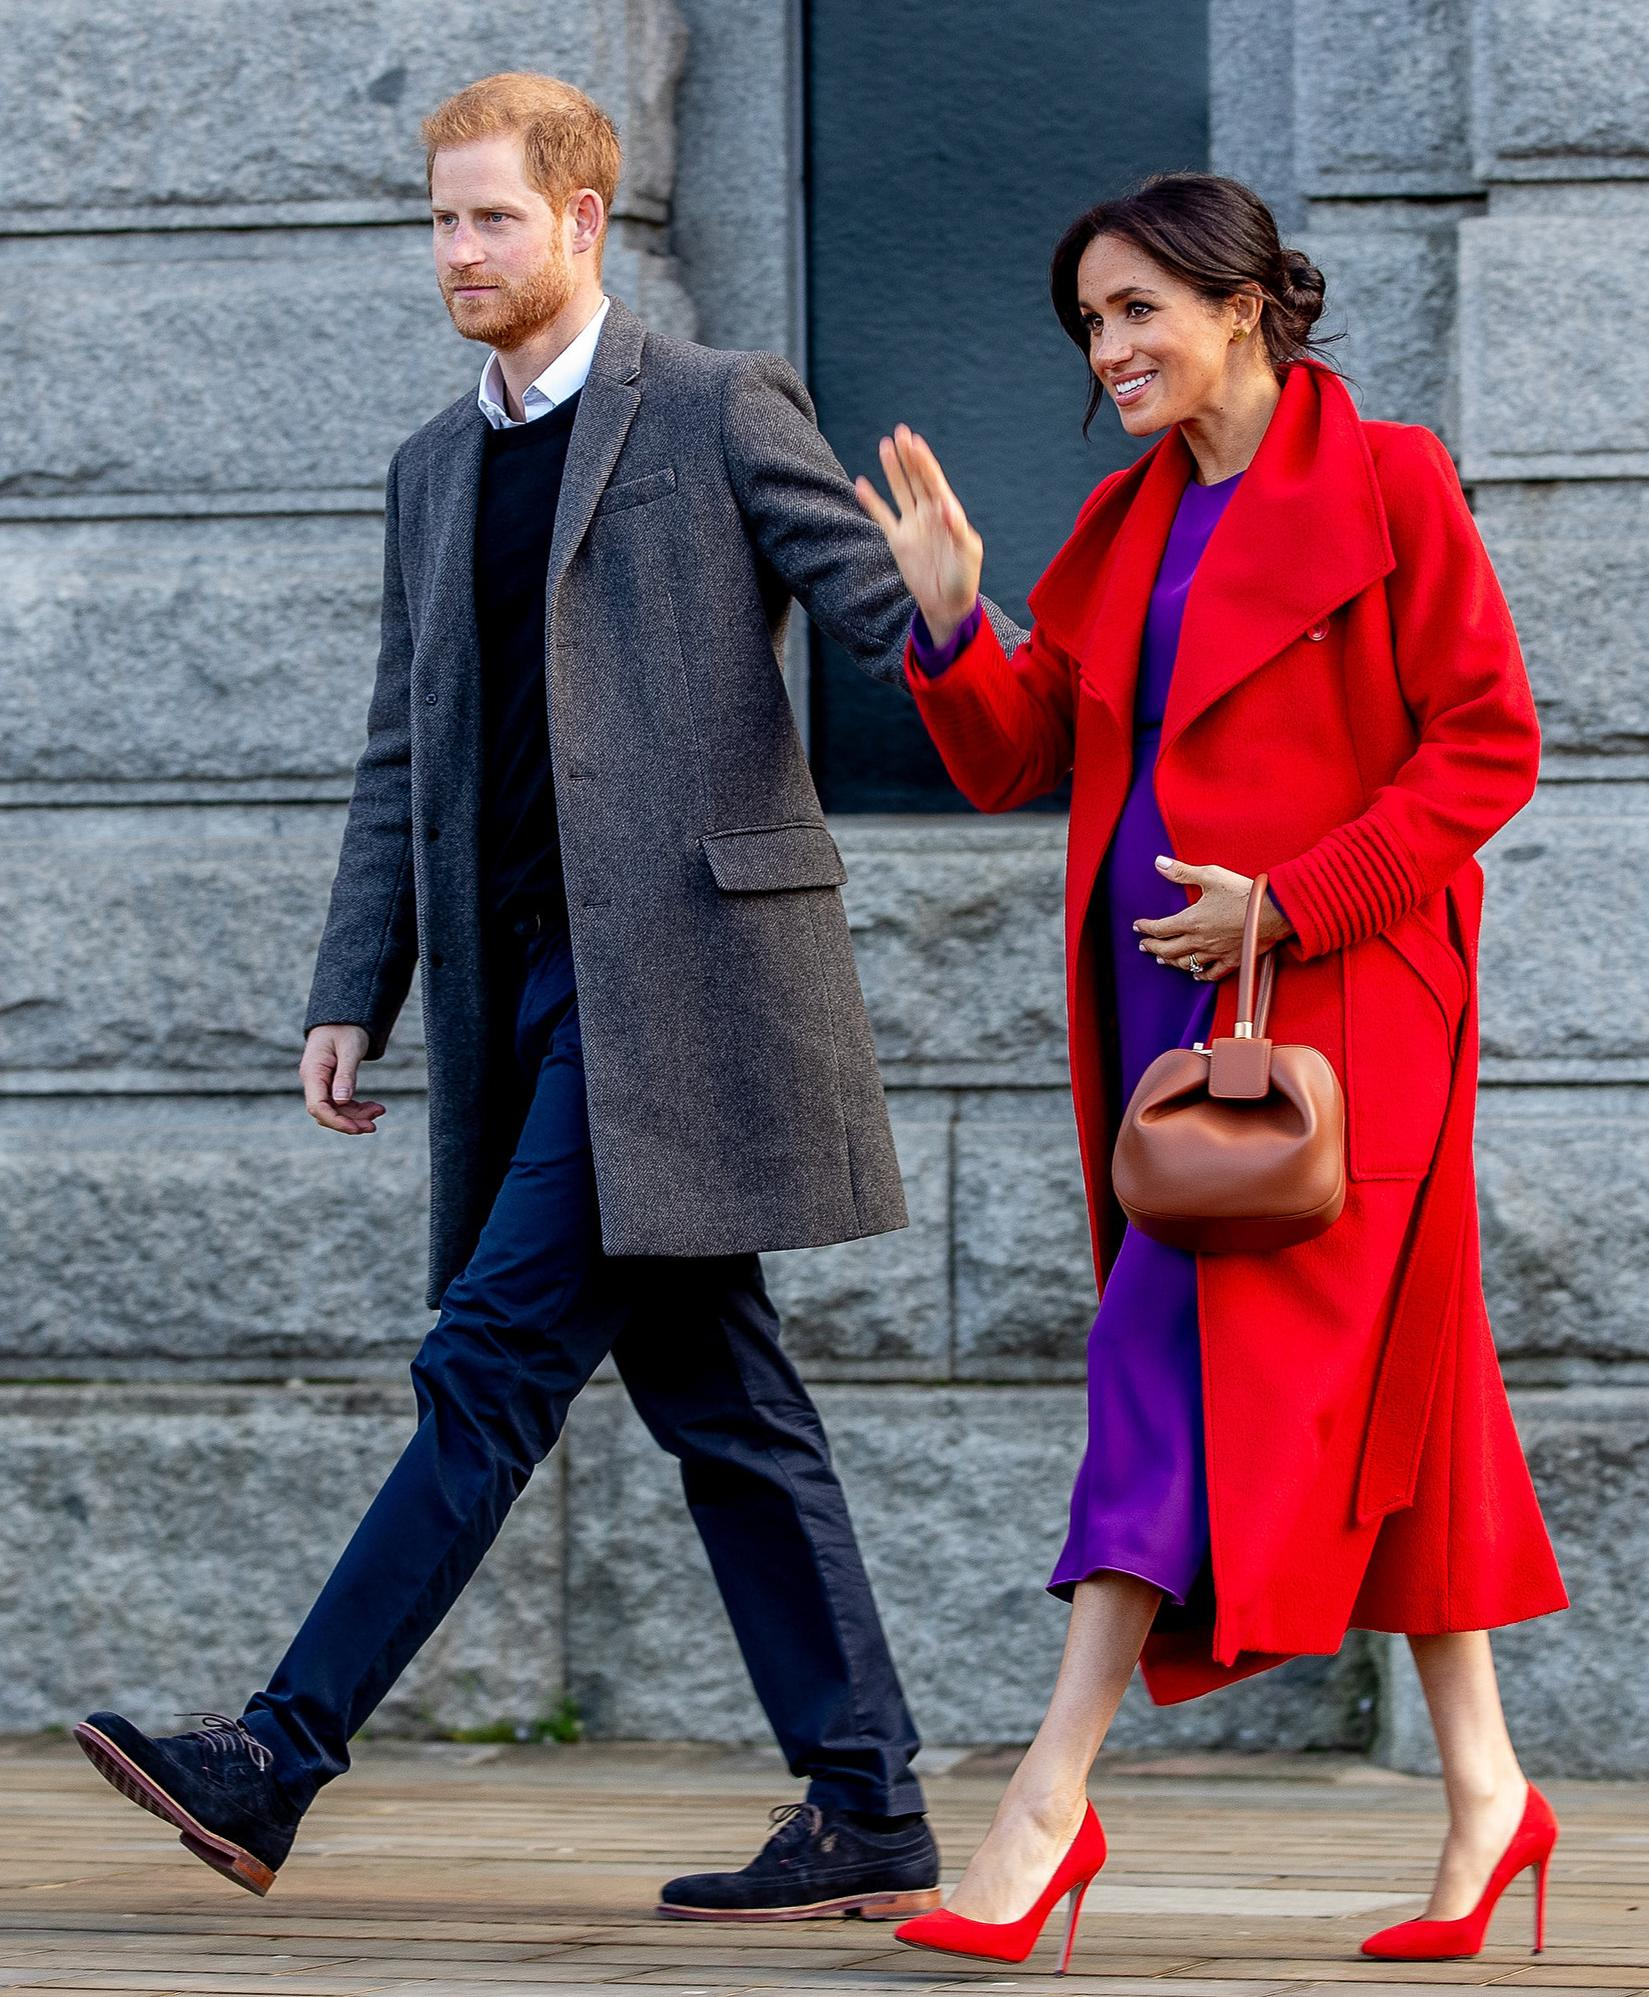 The Duke and Duchess of Sussex depart Hamilton Square in Birkenhead, following a walkabout and a visit to a new sculpture marking the 100th anniversary of war poet Wilfred Owen�s death.